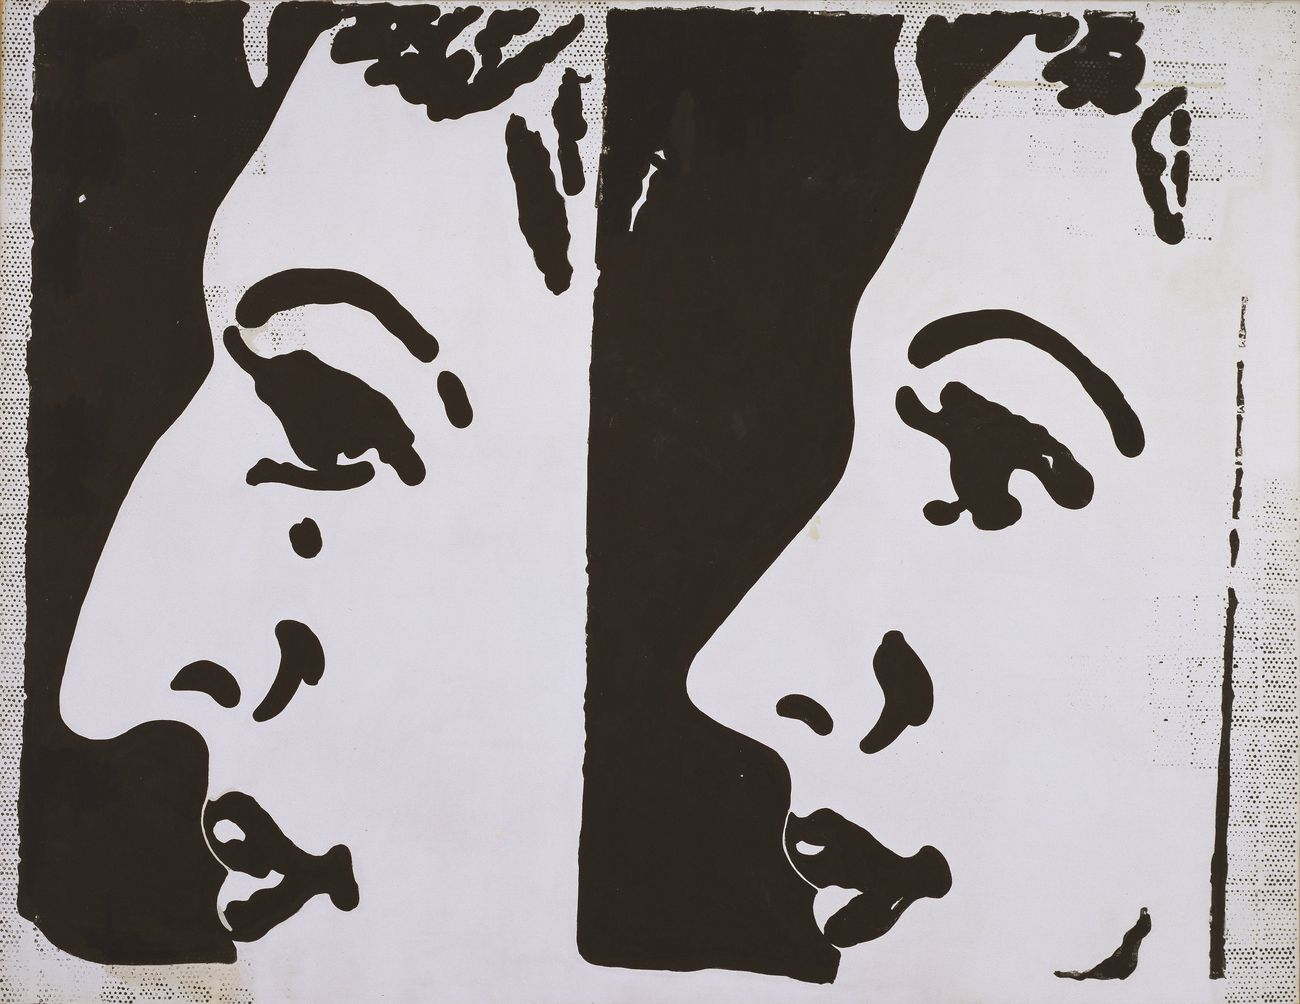 Il Genere Di Pittura Di Andy Andy Warhol E La Pop Art In Mostra A Madrid Artribune